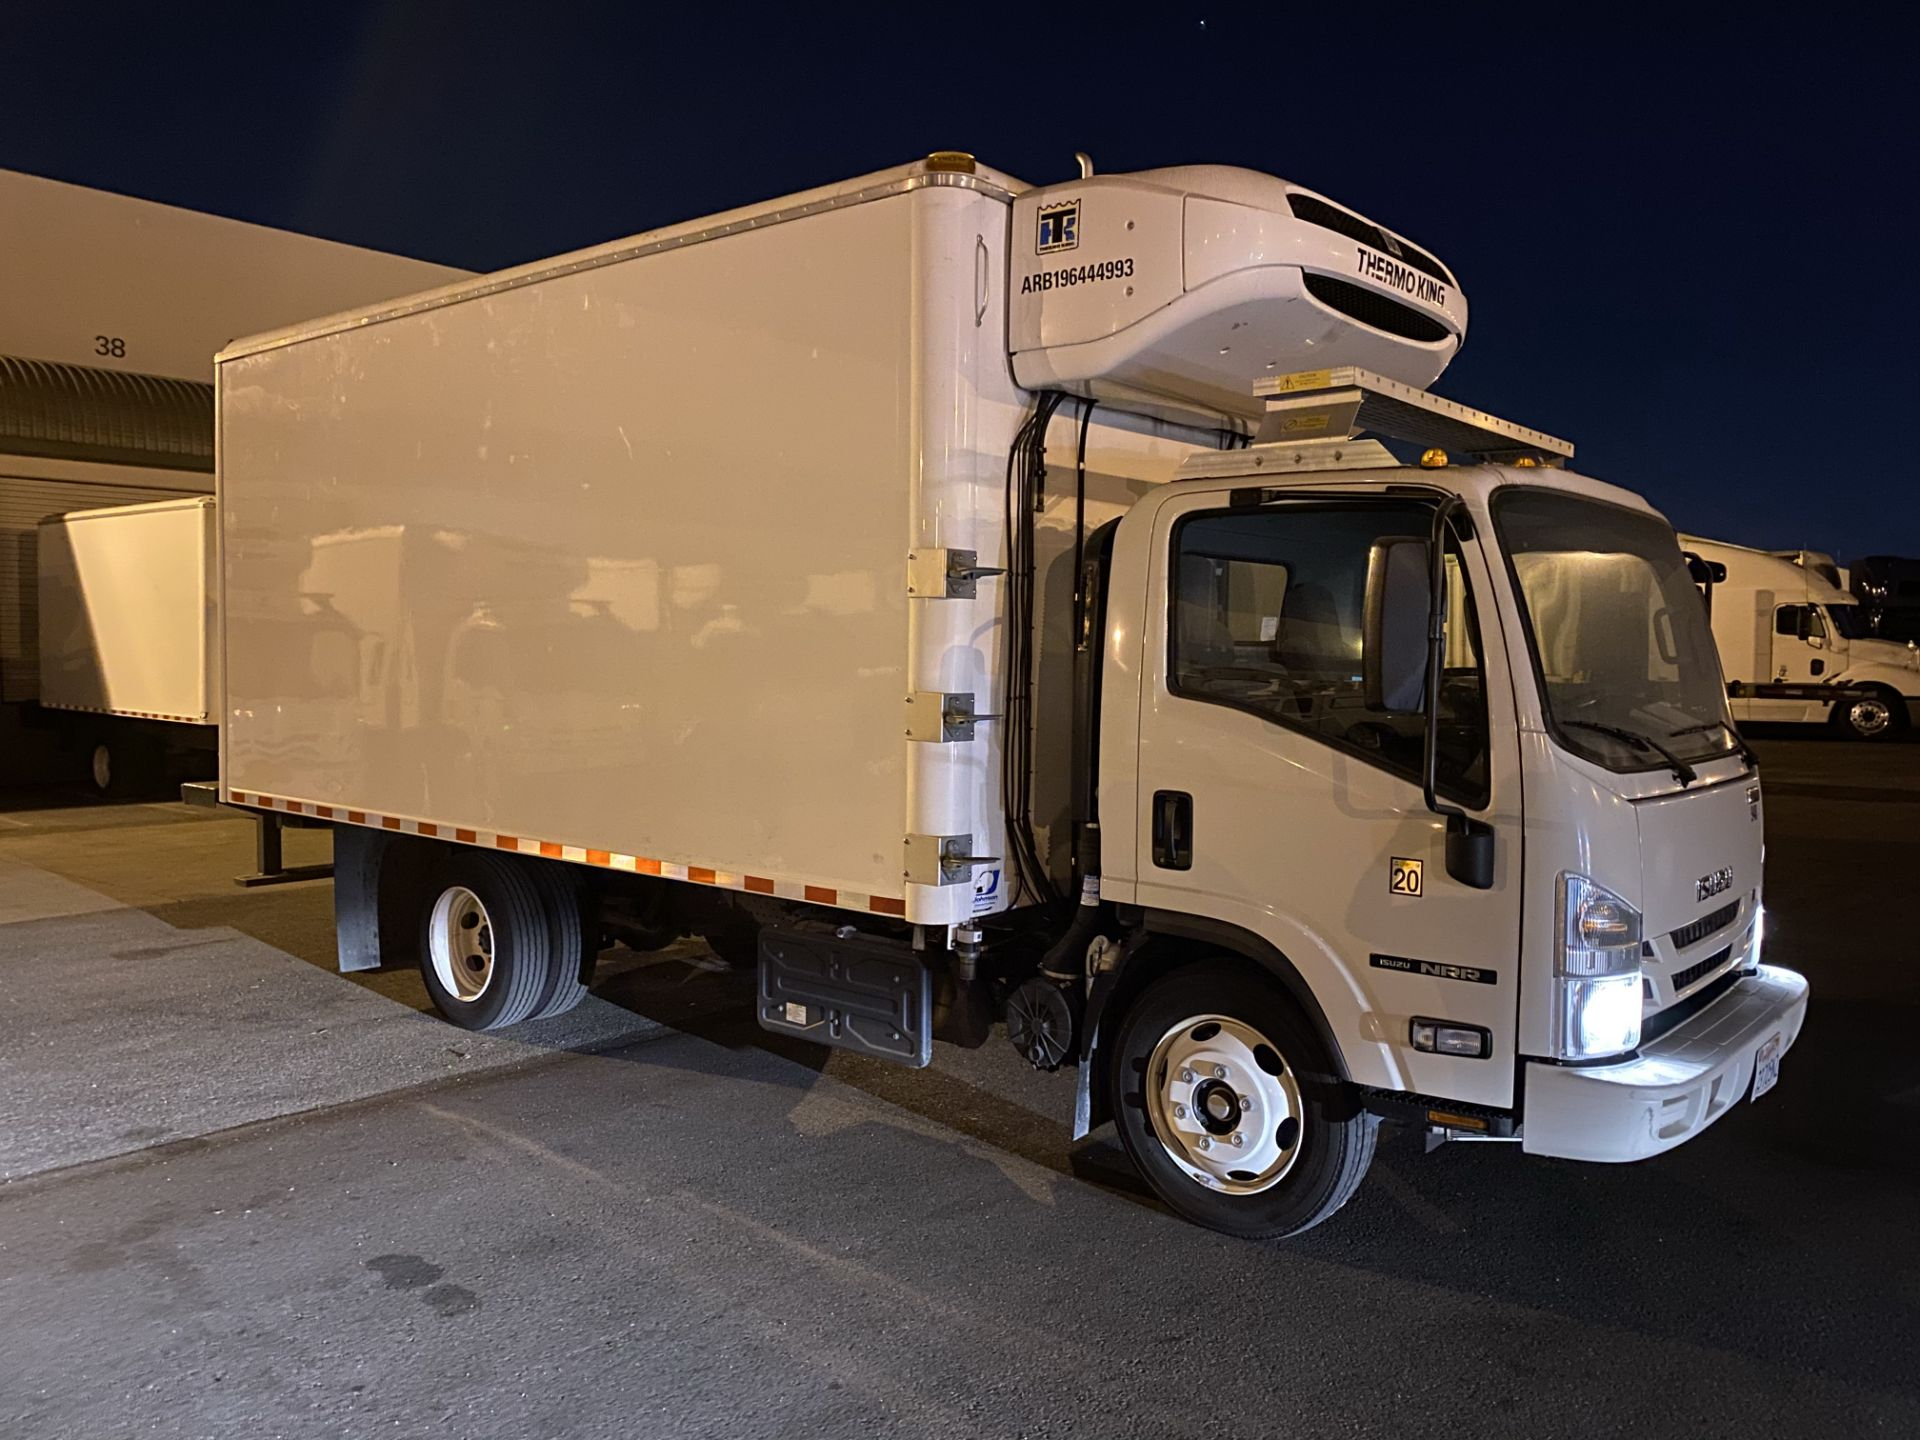 2019 Isuzu refrigerated truck - Image 3 of 9